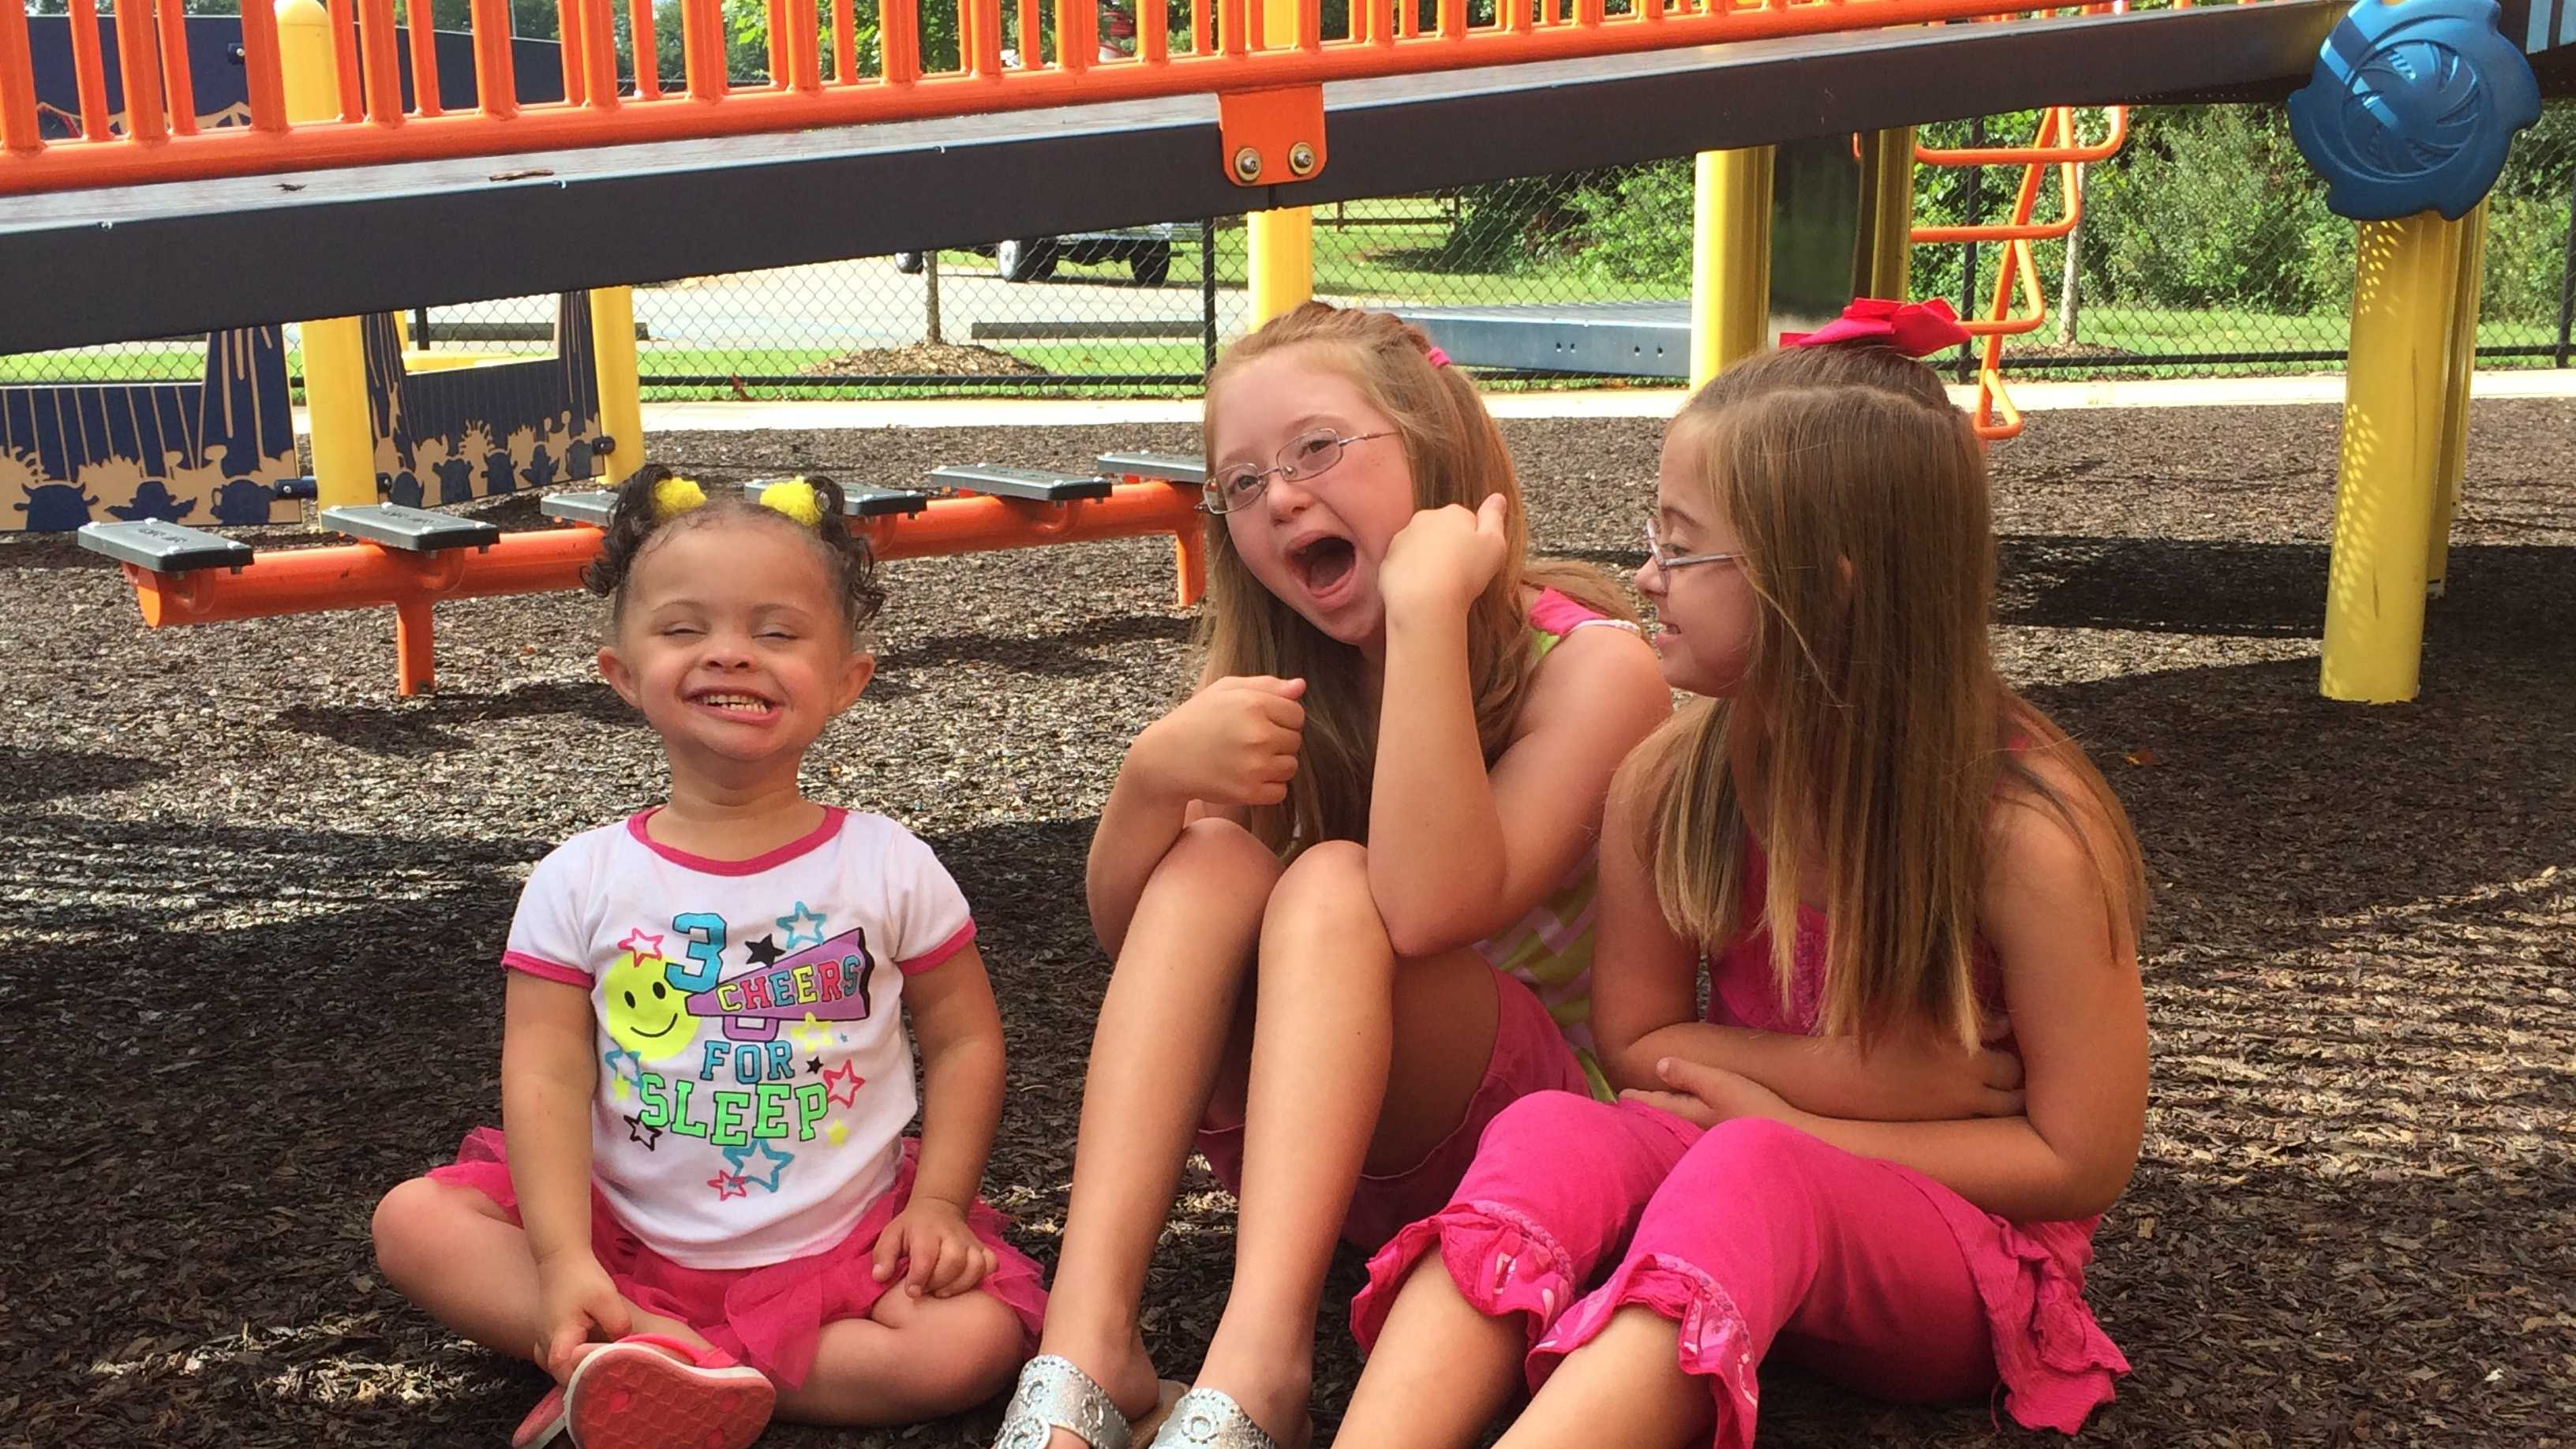 Nevaeh, Madison and Avery will appear in a Times Square video for Down Syndrome awareness